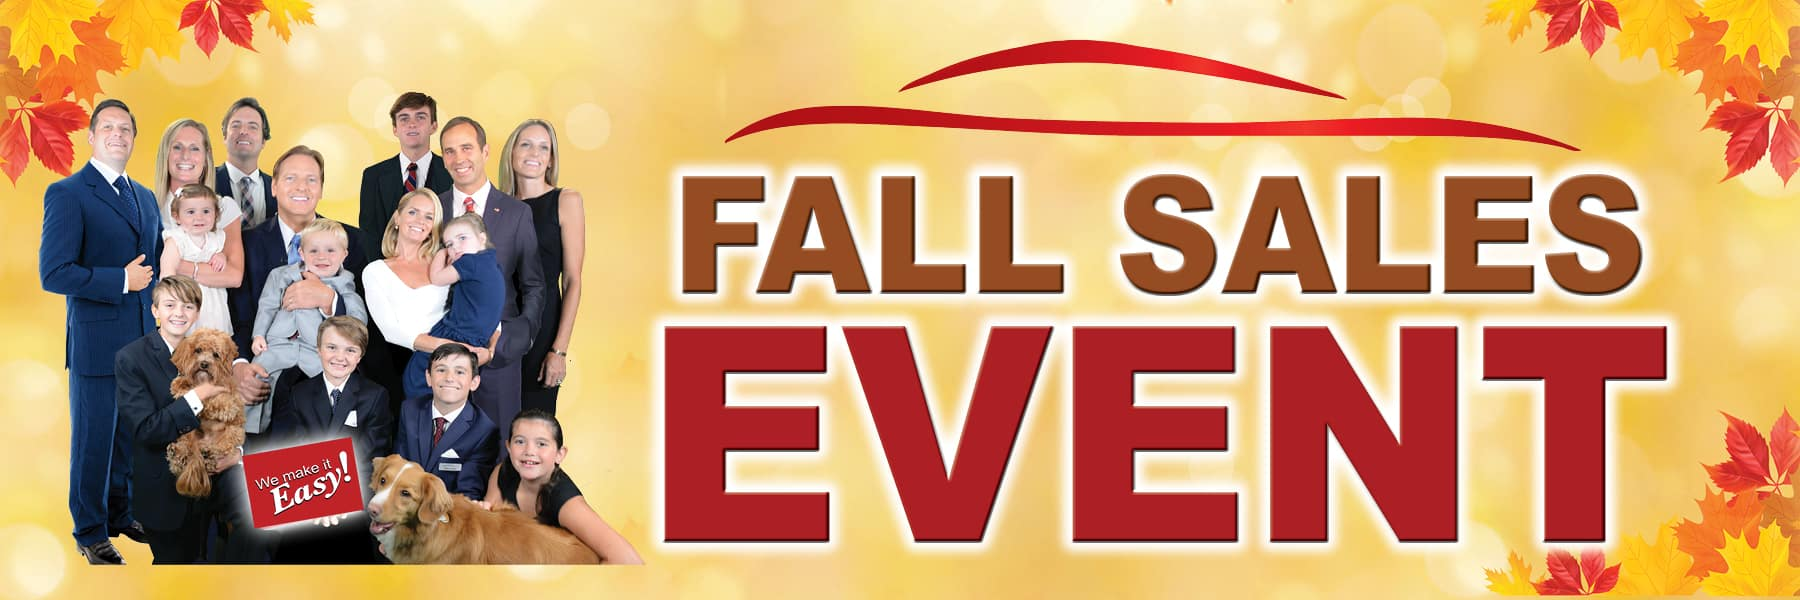 Kelly Nissan of Woburn Fall Sales Event